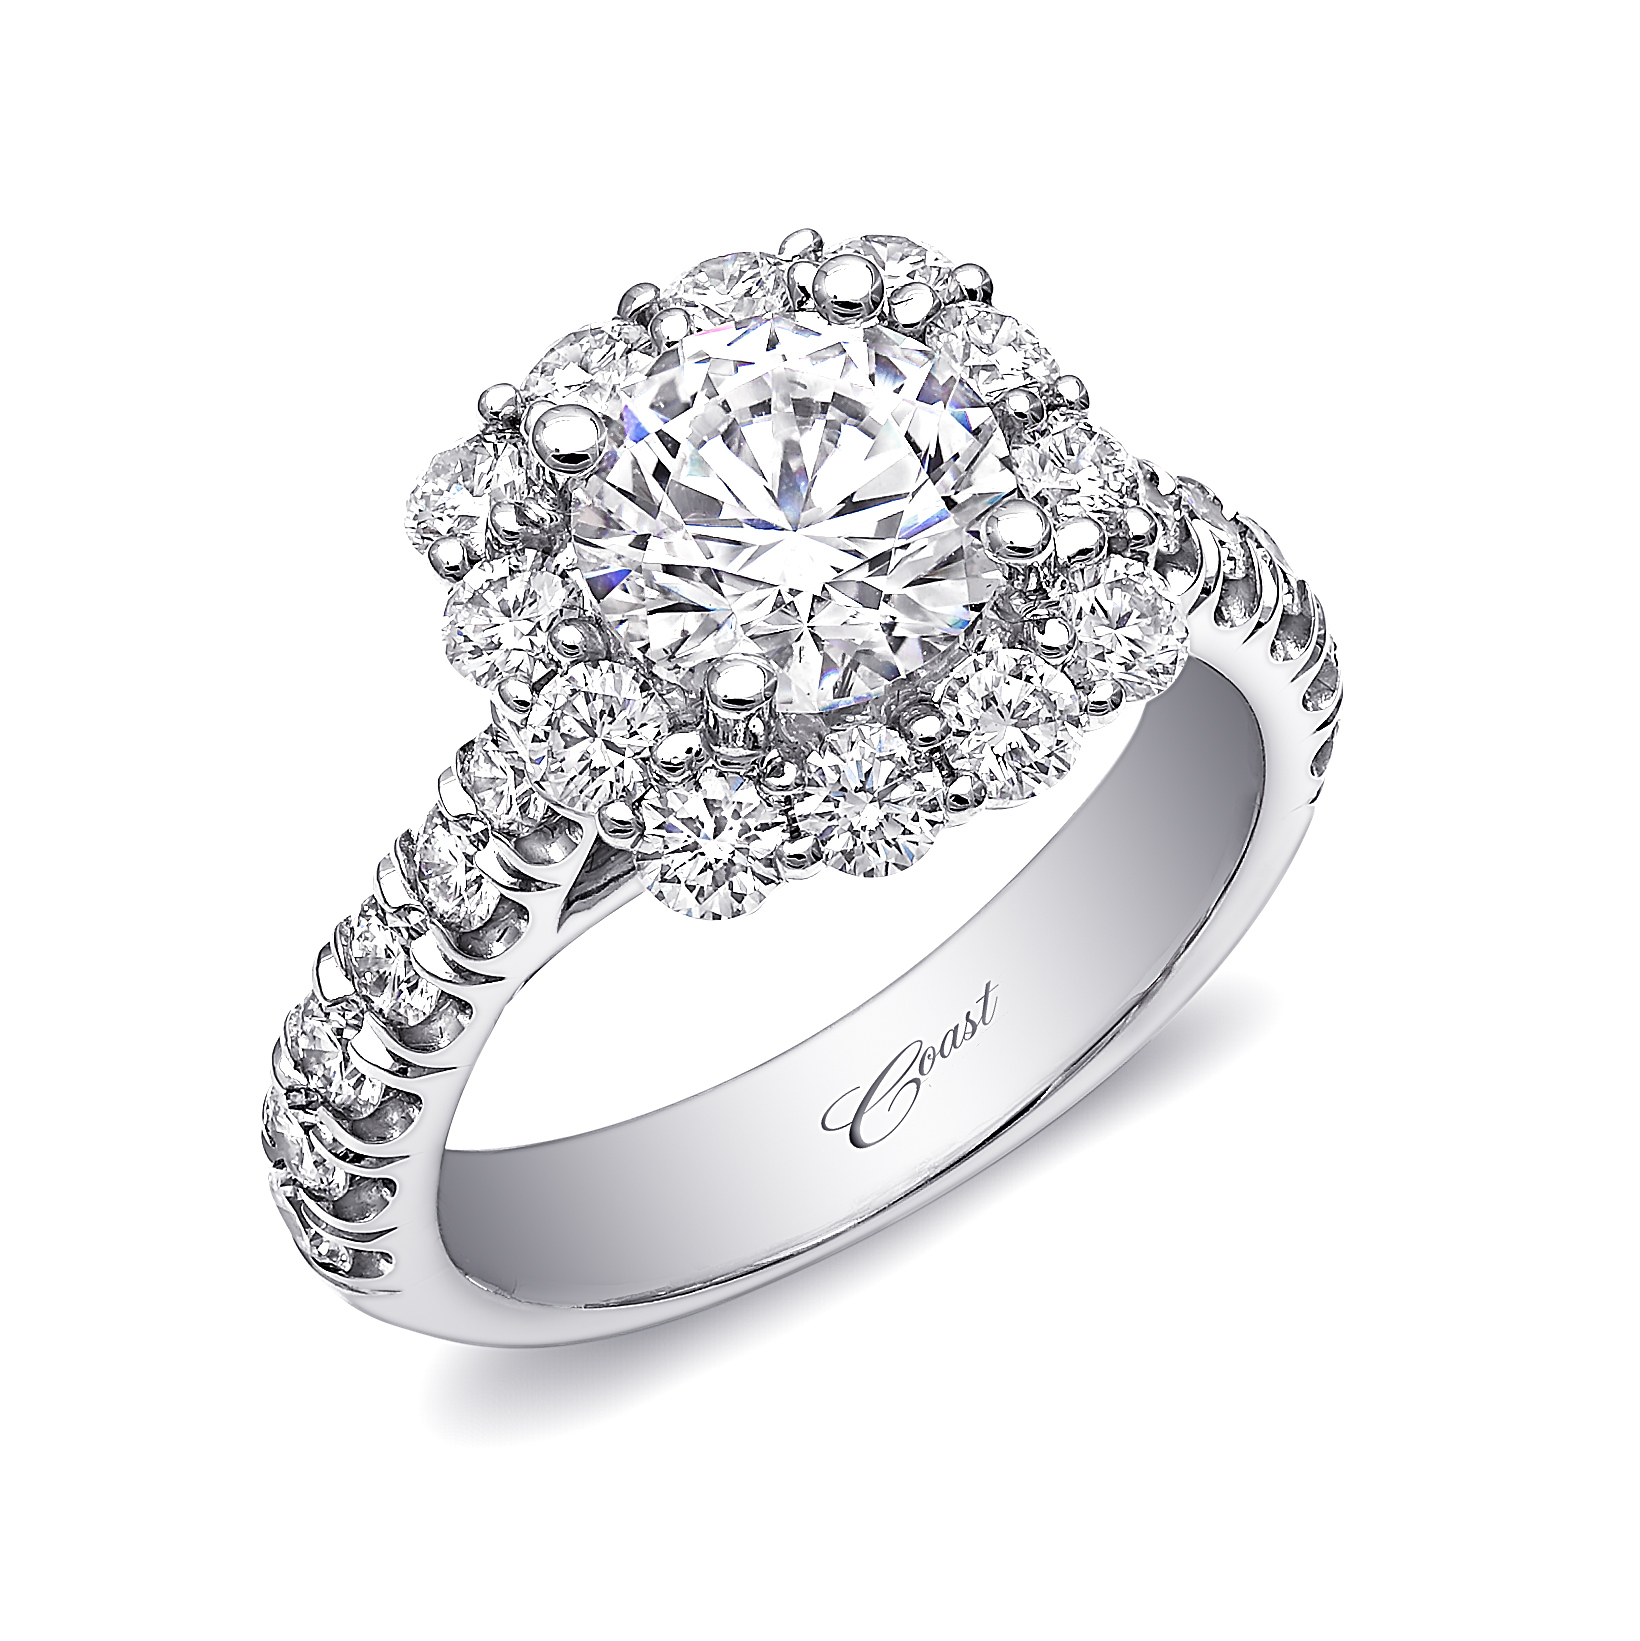 Charisma Engagement Ring - Large Cushion-shaped Diamond Halo